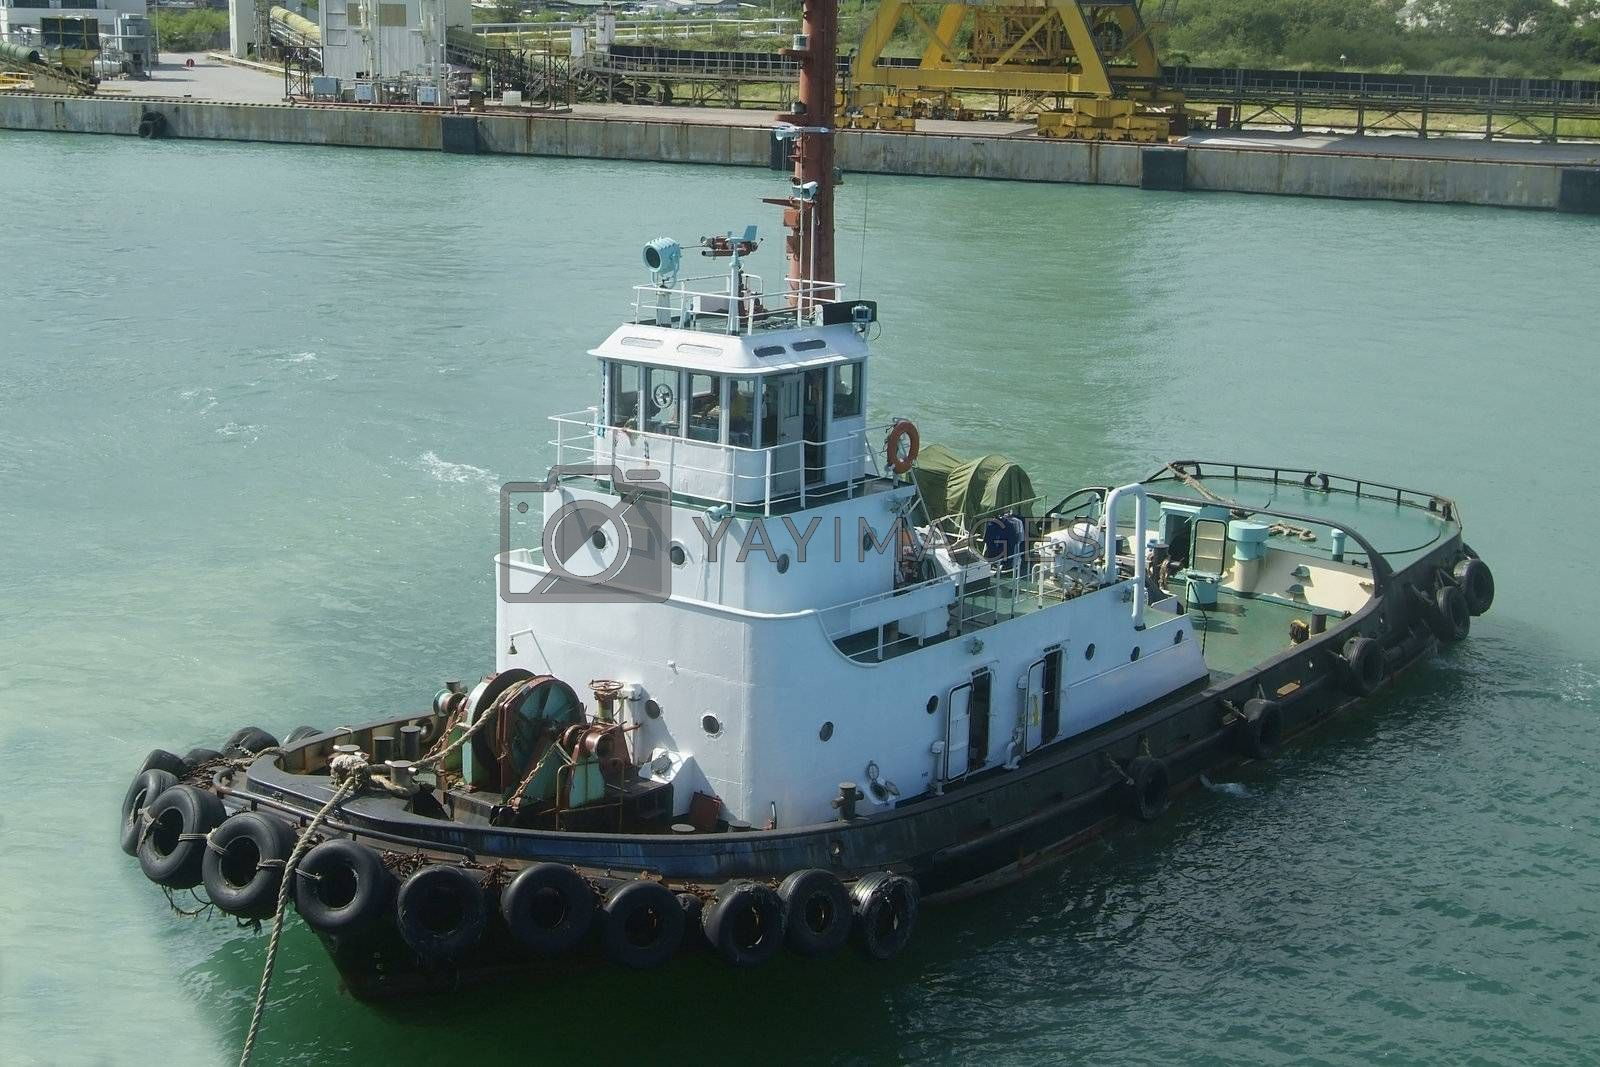 Royalty free image of Towboat by epixx